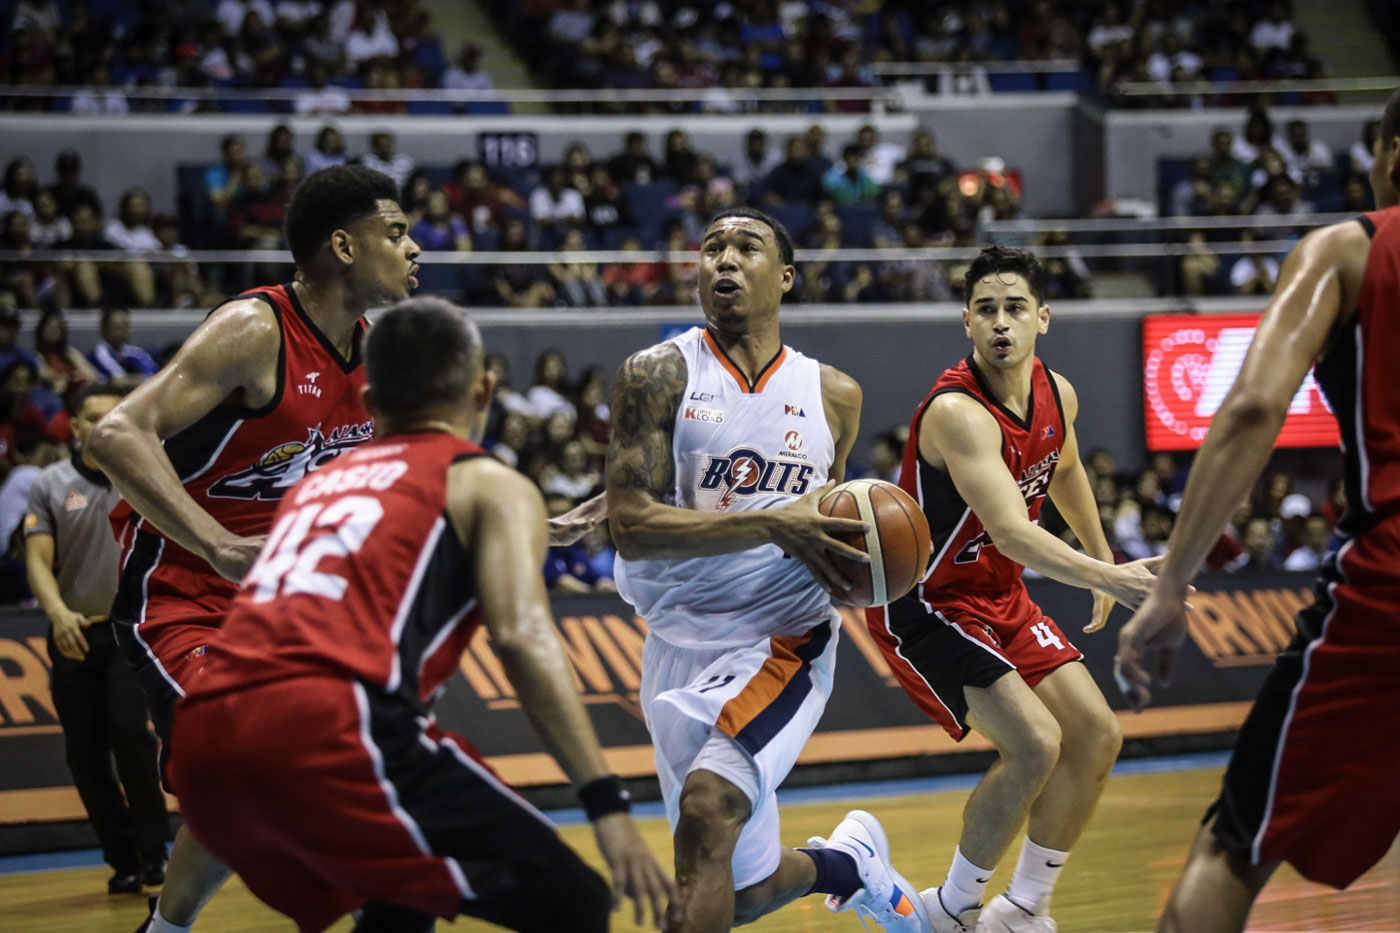 87d98d4998c Chris Newsome paces the Meralco Bolts with 18 points, 8 assists and